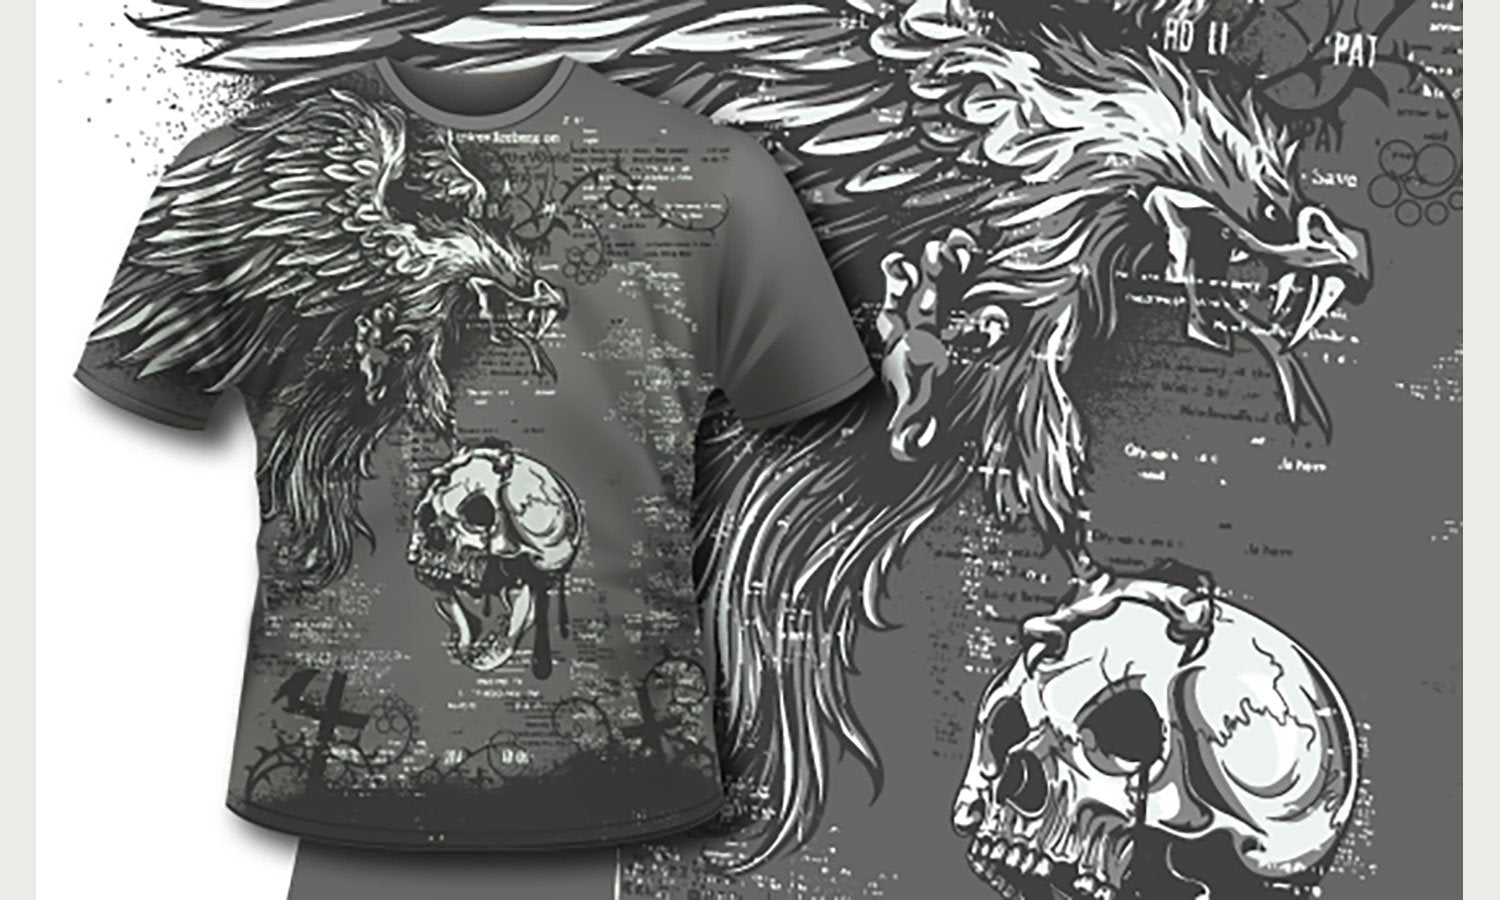 Death - Printed T-Shirt for Men, Women and Kids - TS299